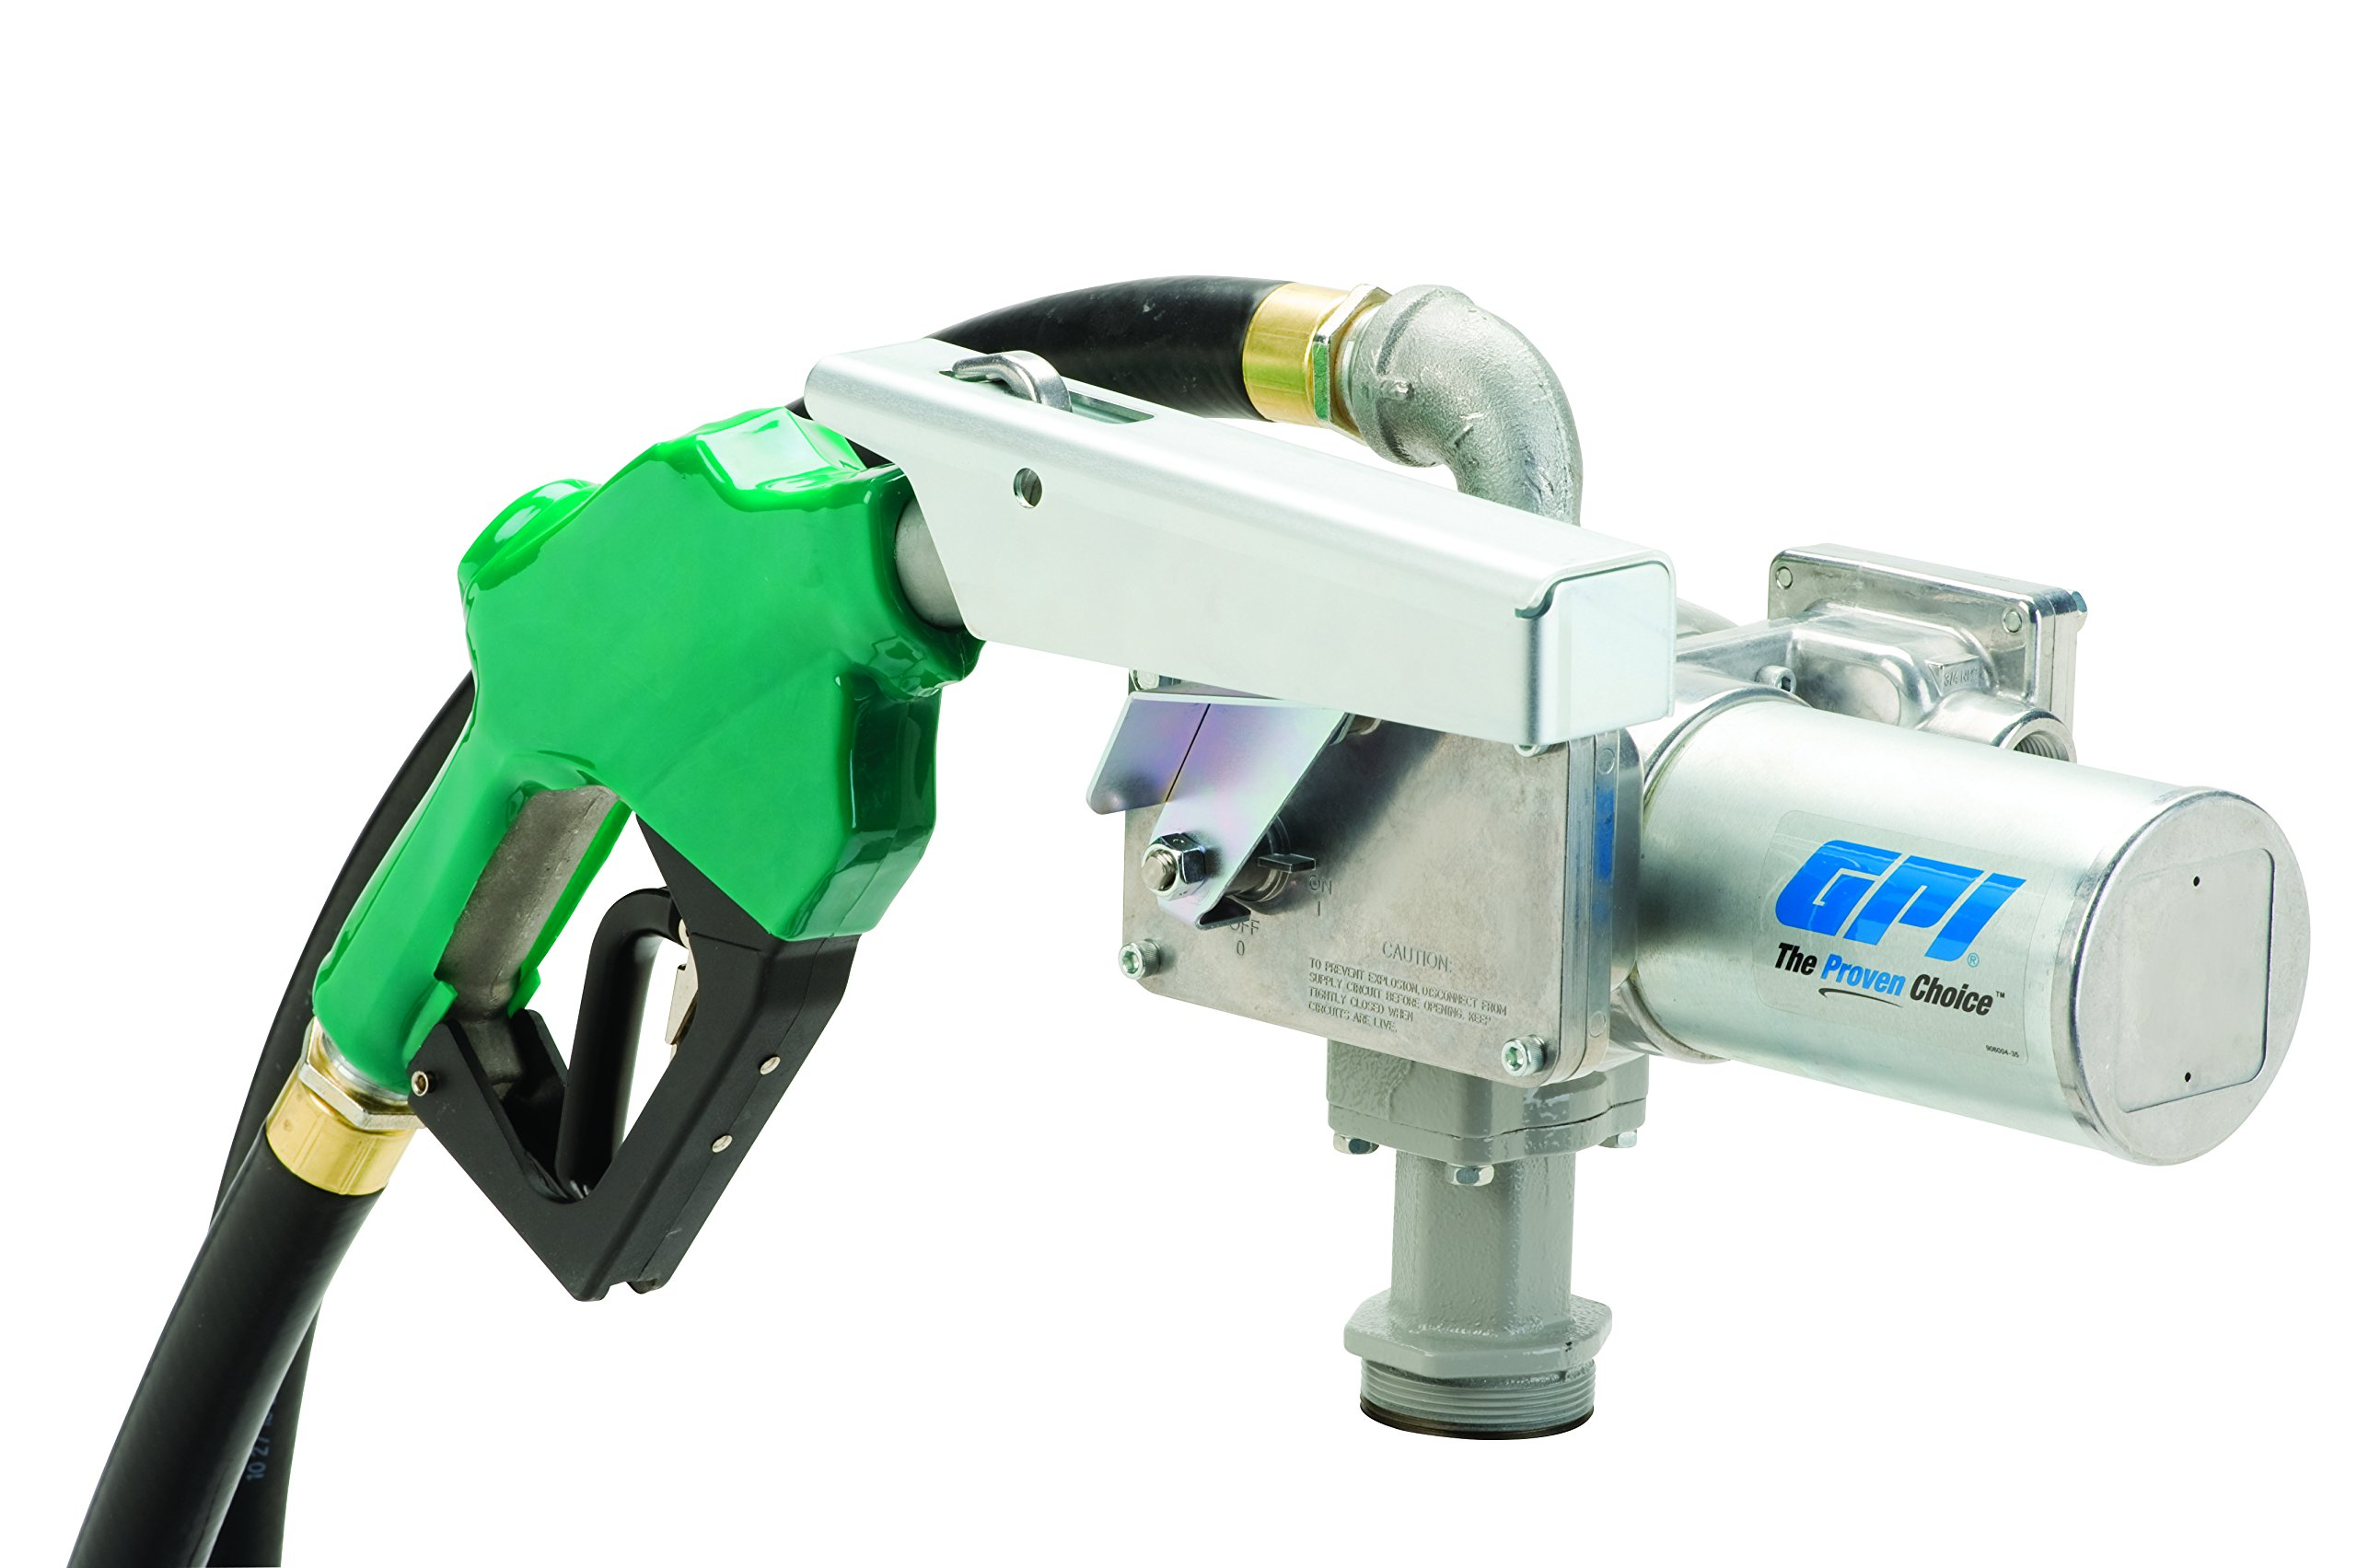 GPI 144000-01, M-3020-AD High Flow Cast Iron Fuel Transfer Pump, 20 GPM, 12-VDC, 1-Inch Automatic Diesel Nozzle, 12-Foot Fuel Hose, 18-Foot Power Cord, Adjustable Suction Pipe